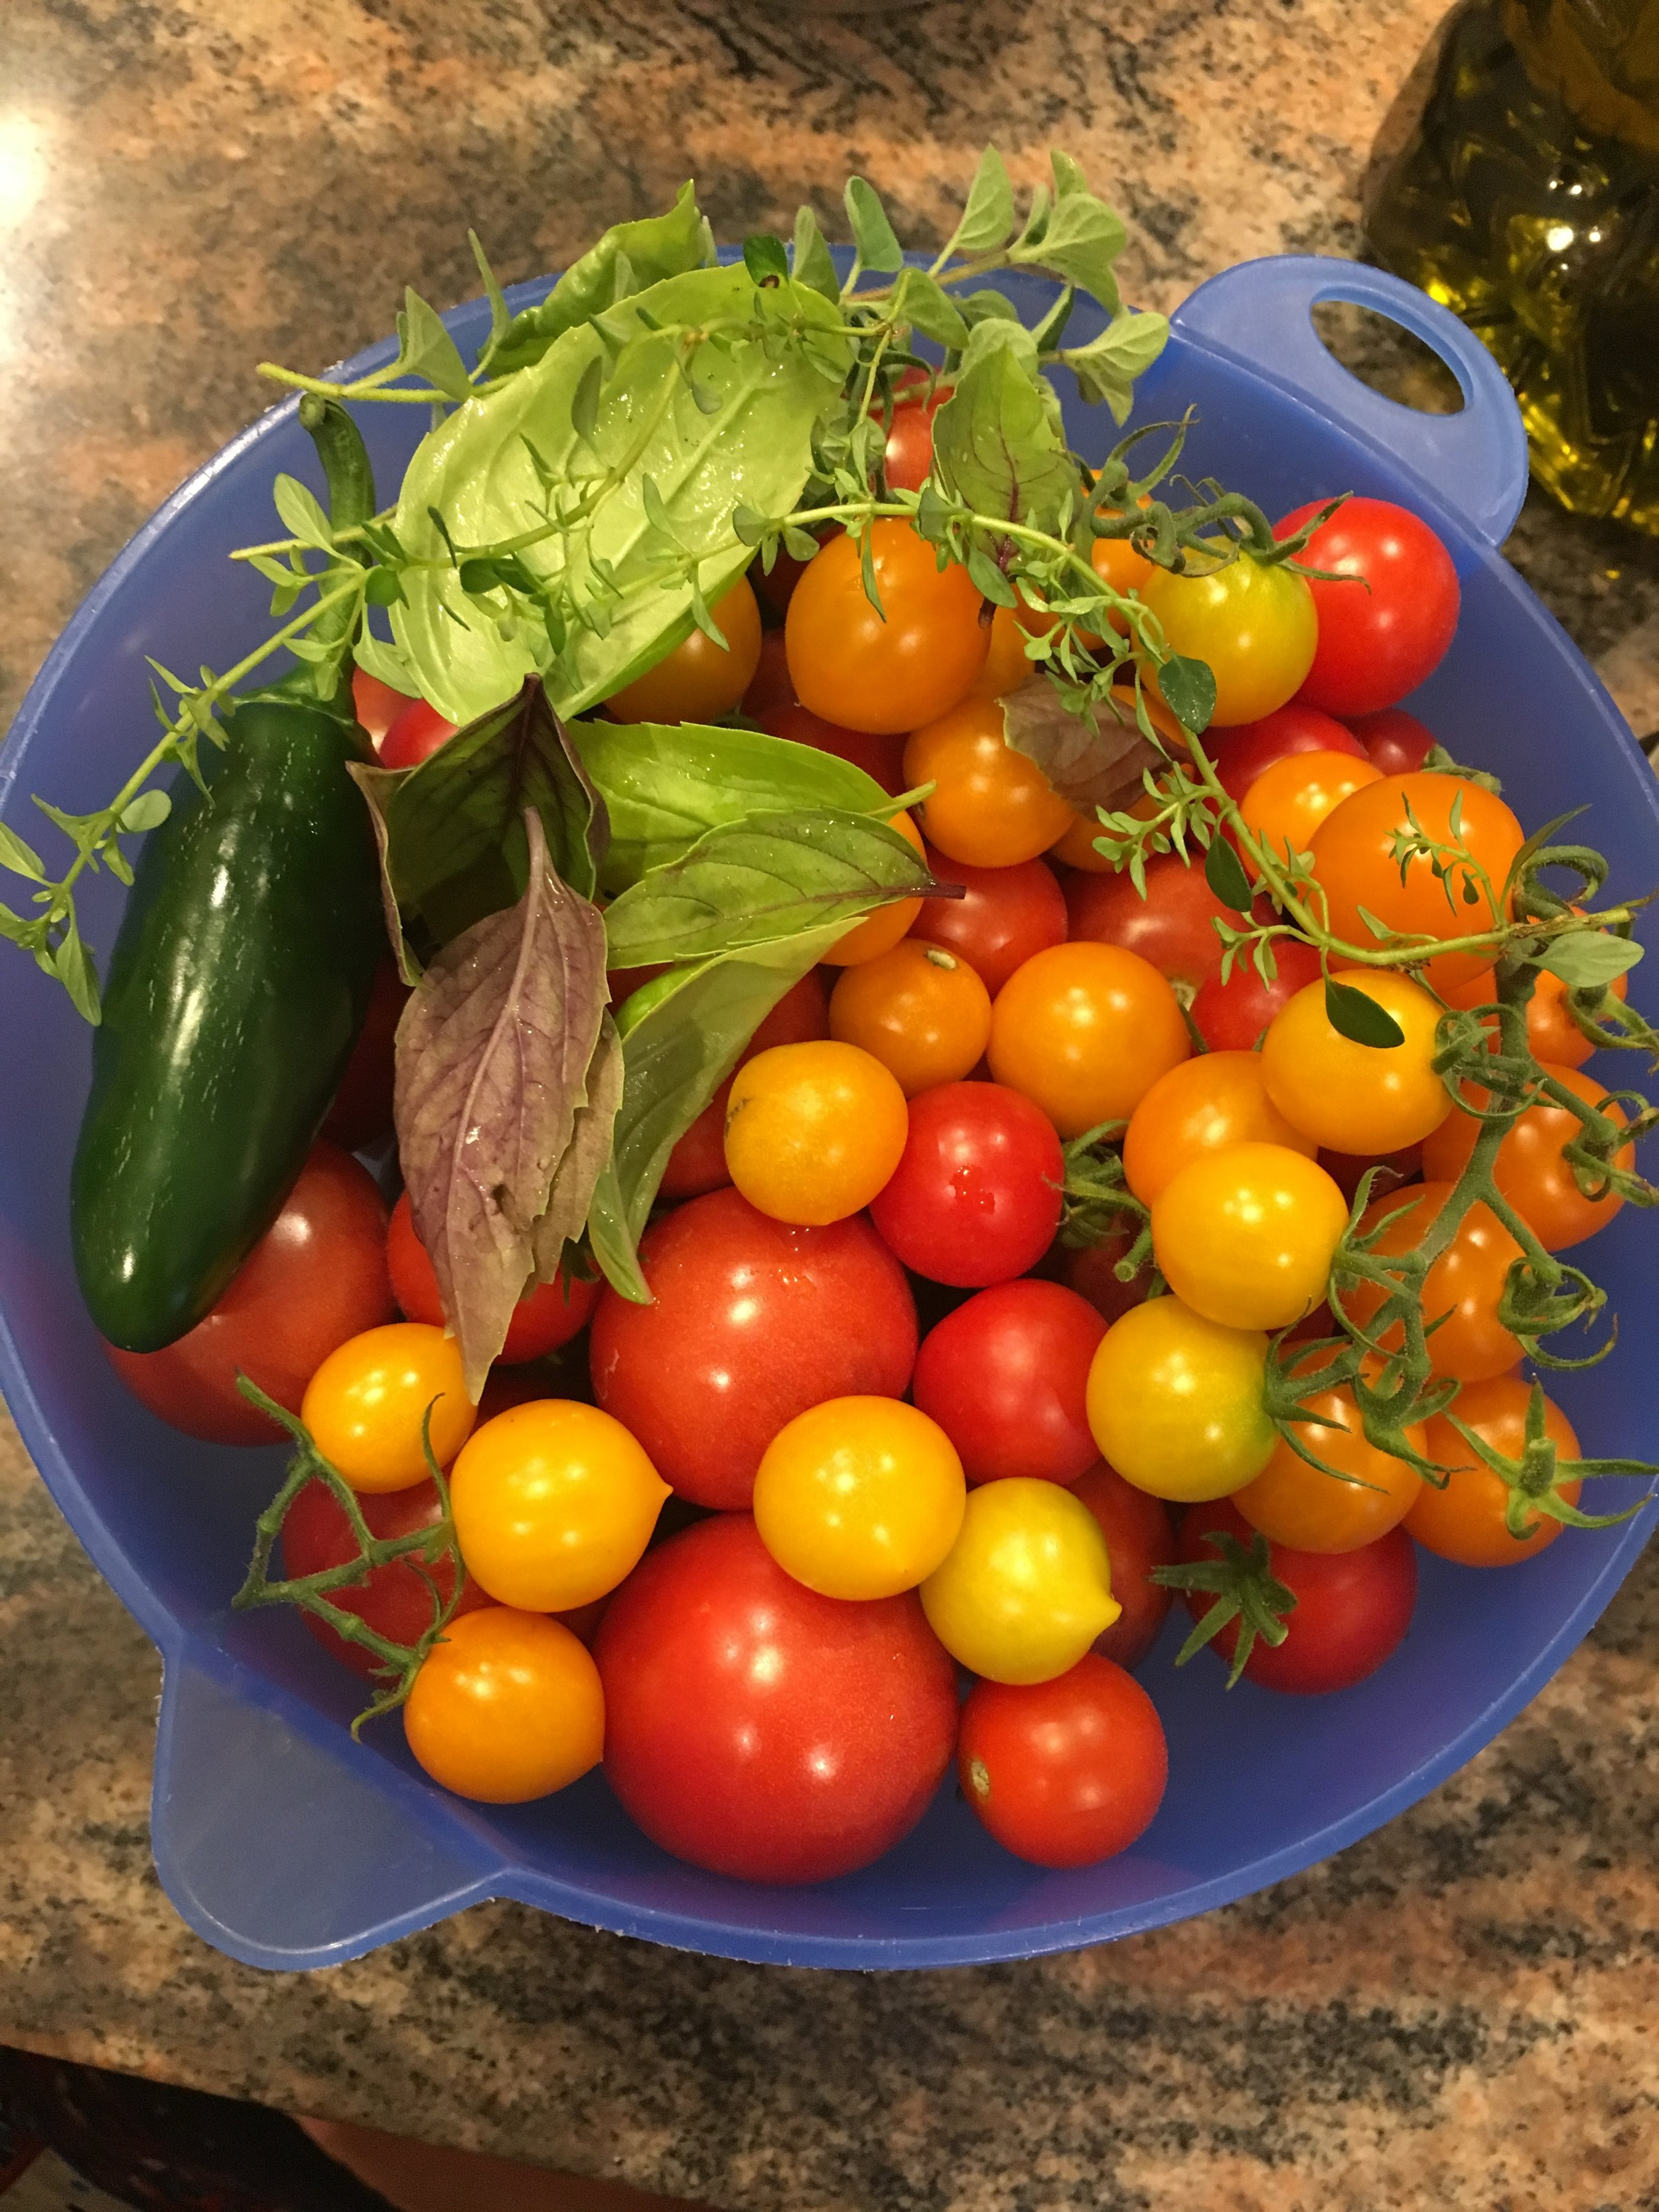 Harvest Time! Tomatoes, Peppers, & Herbs from my Garden. #tevgardens